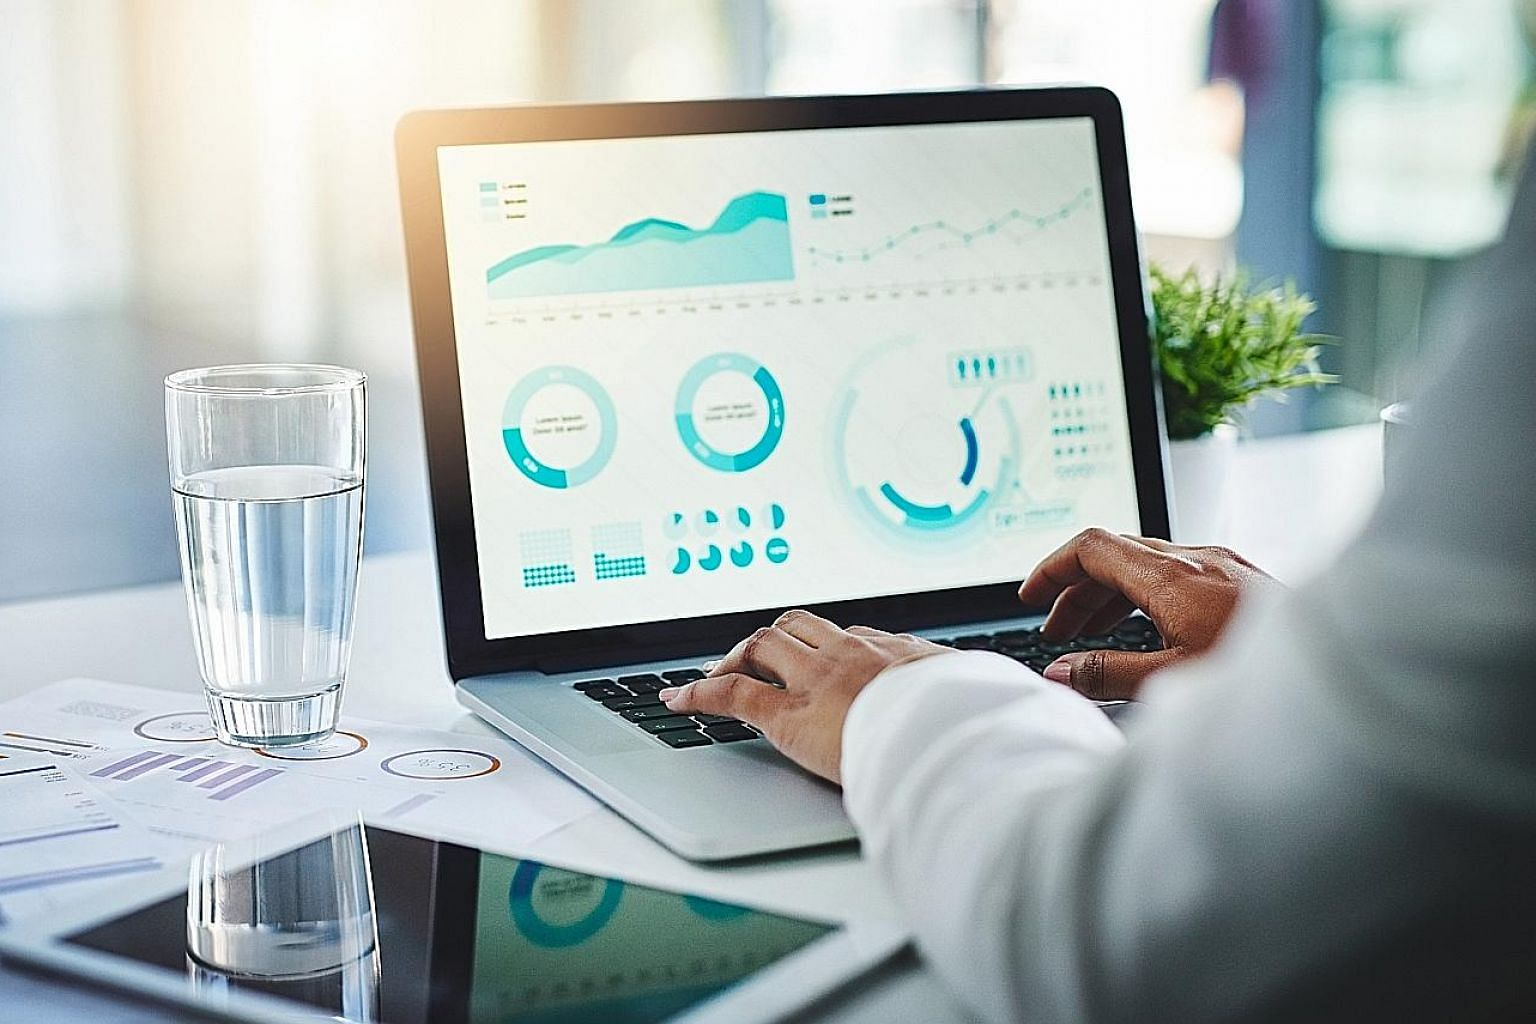 According to the recently released NTUC LearningHub data skills report, 93 per cent of employers believe that improved data competencies will enable their staff to do their job better, and 90 per cent showed keen interest in hiring employees who are data